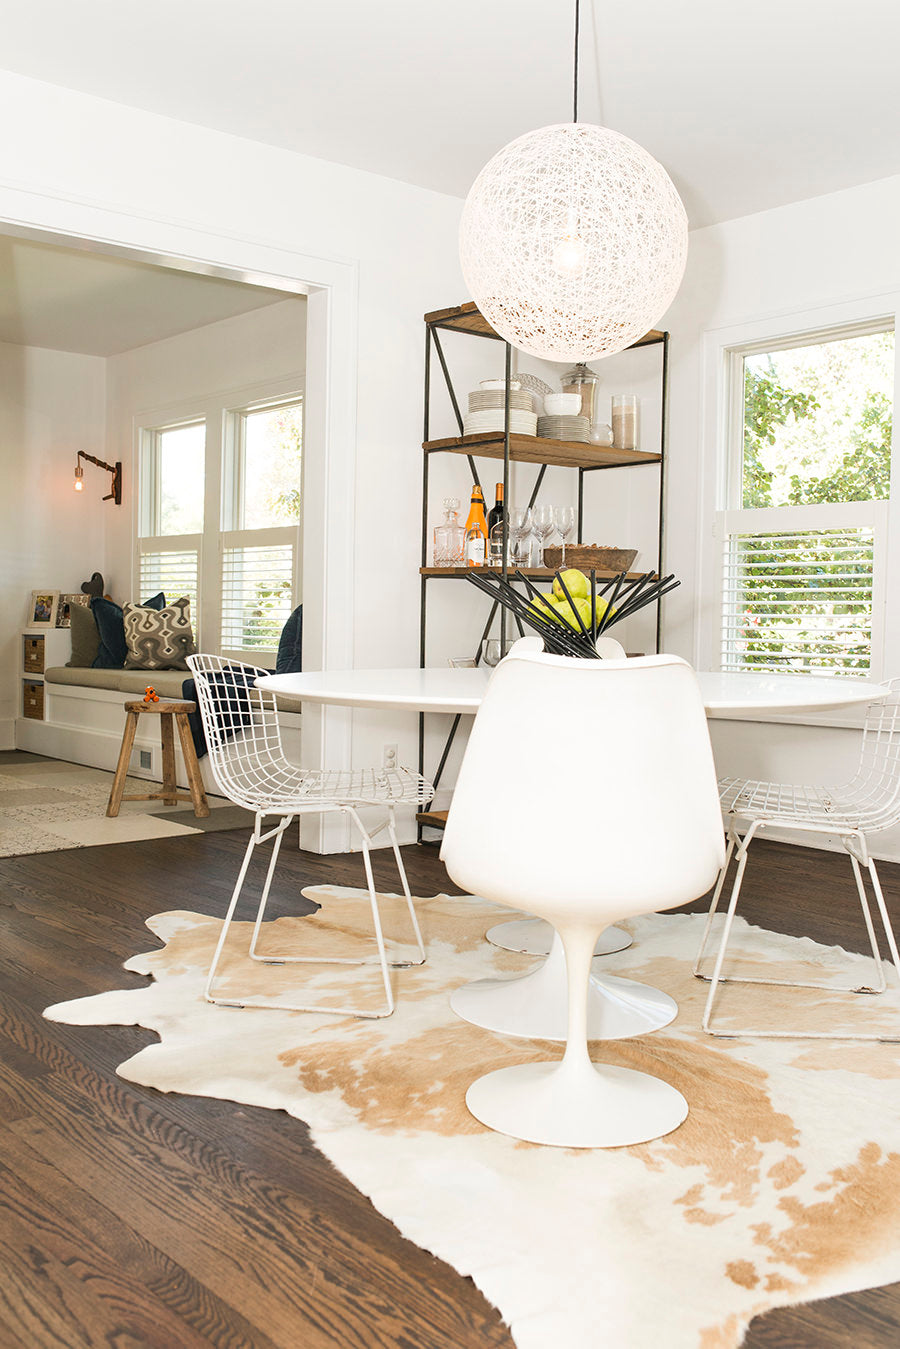 Bertoia Side Chairs, Moooi-Random Light, Modern Dining Room, White Dining Room, Lauren Combs house, Cow Hide Rug,  Knoll-Saarinen Round Dining Table, Knoll-Saarinen Armless Tulip Chairs,